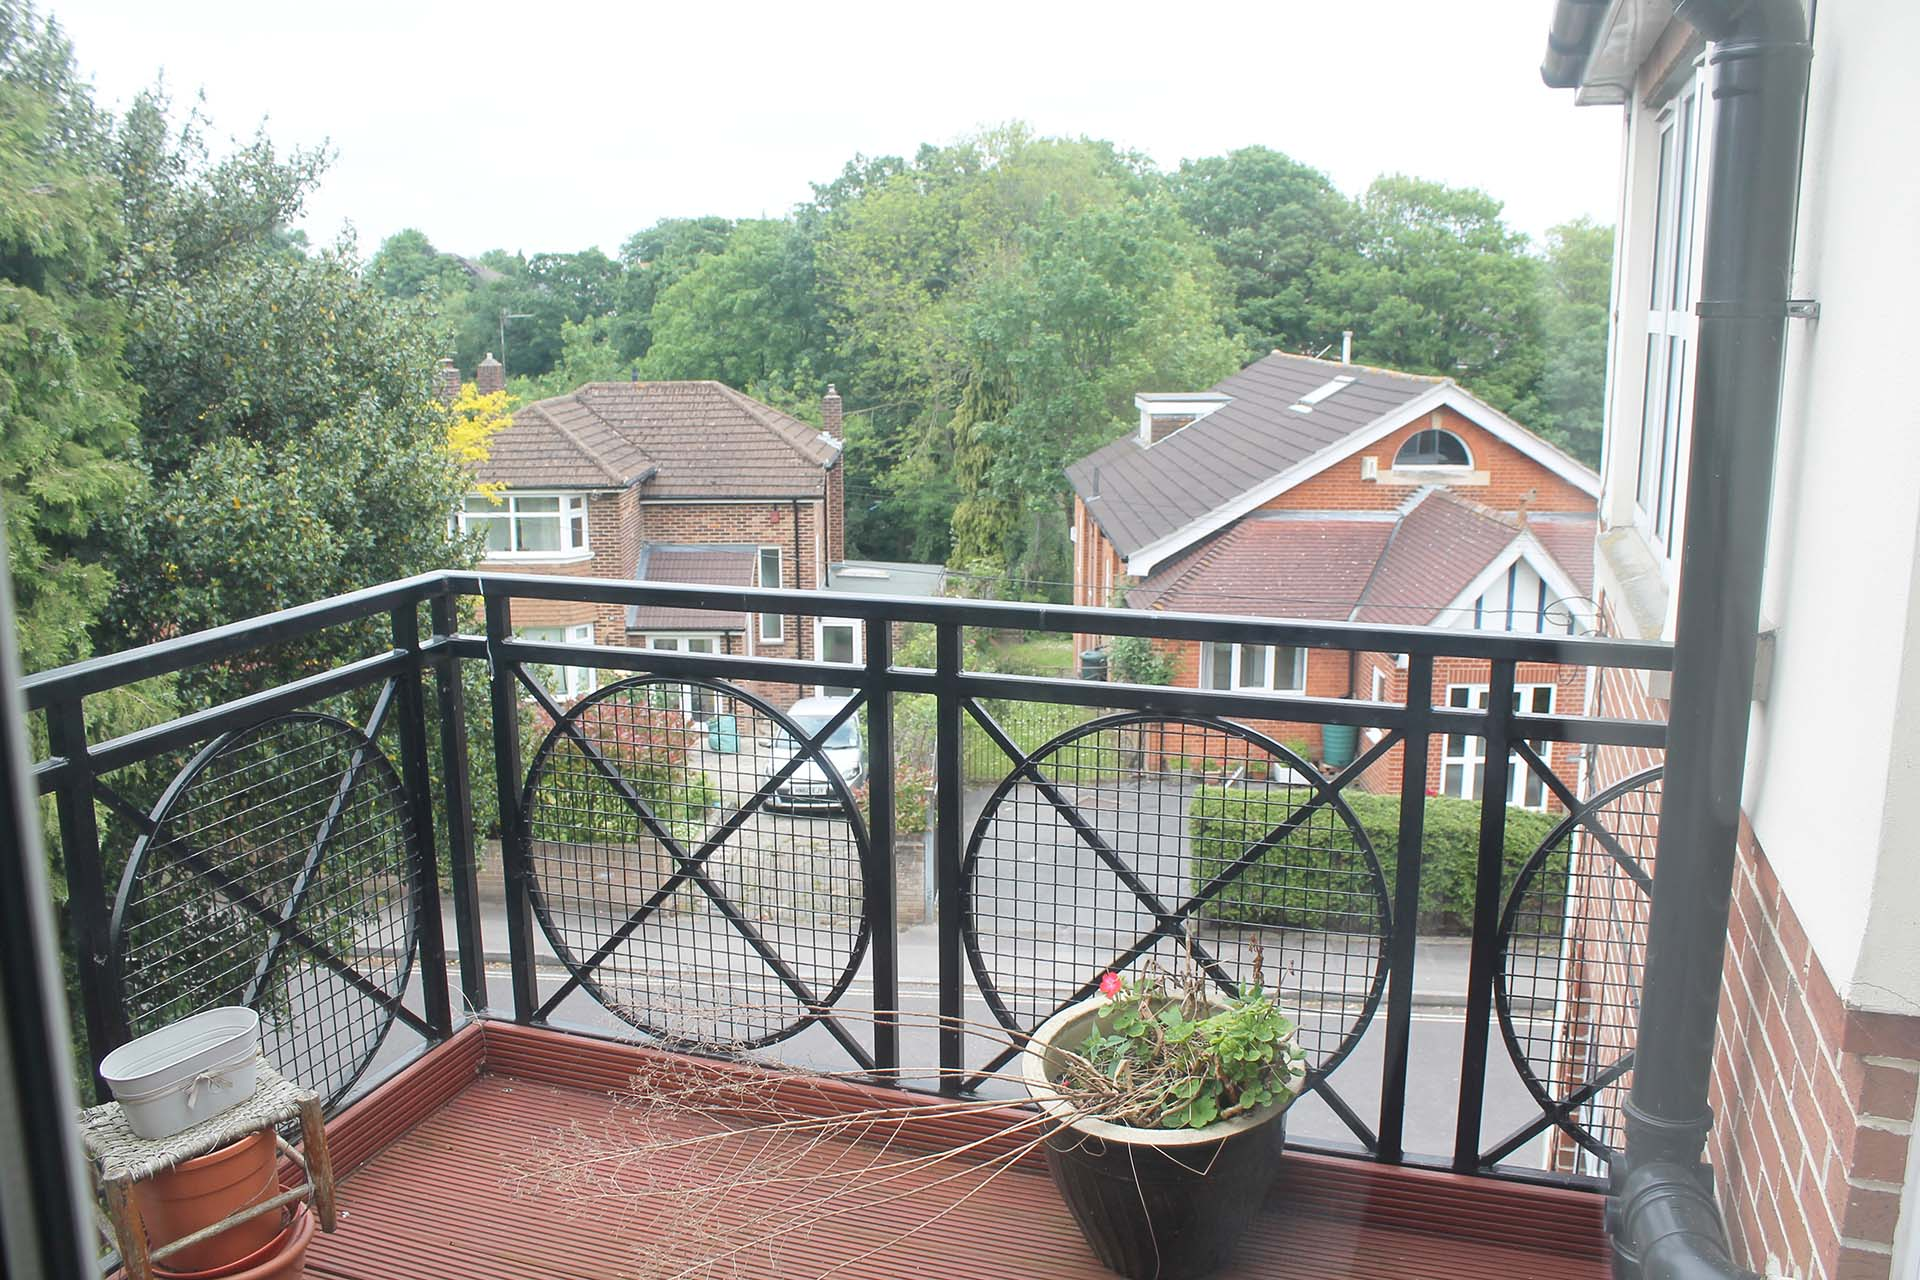 Check Out Our Gallery   Lawnbrook Care Home In Southampton, UK